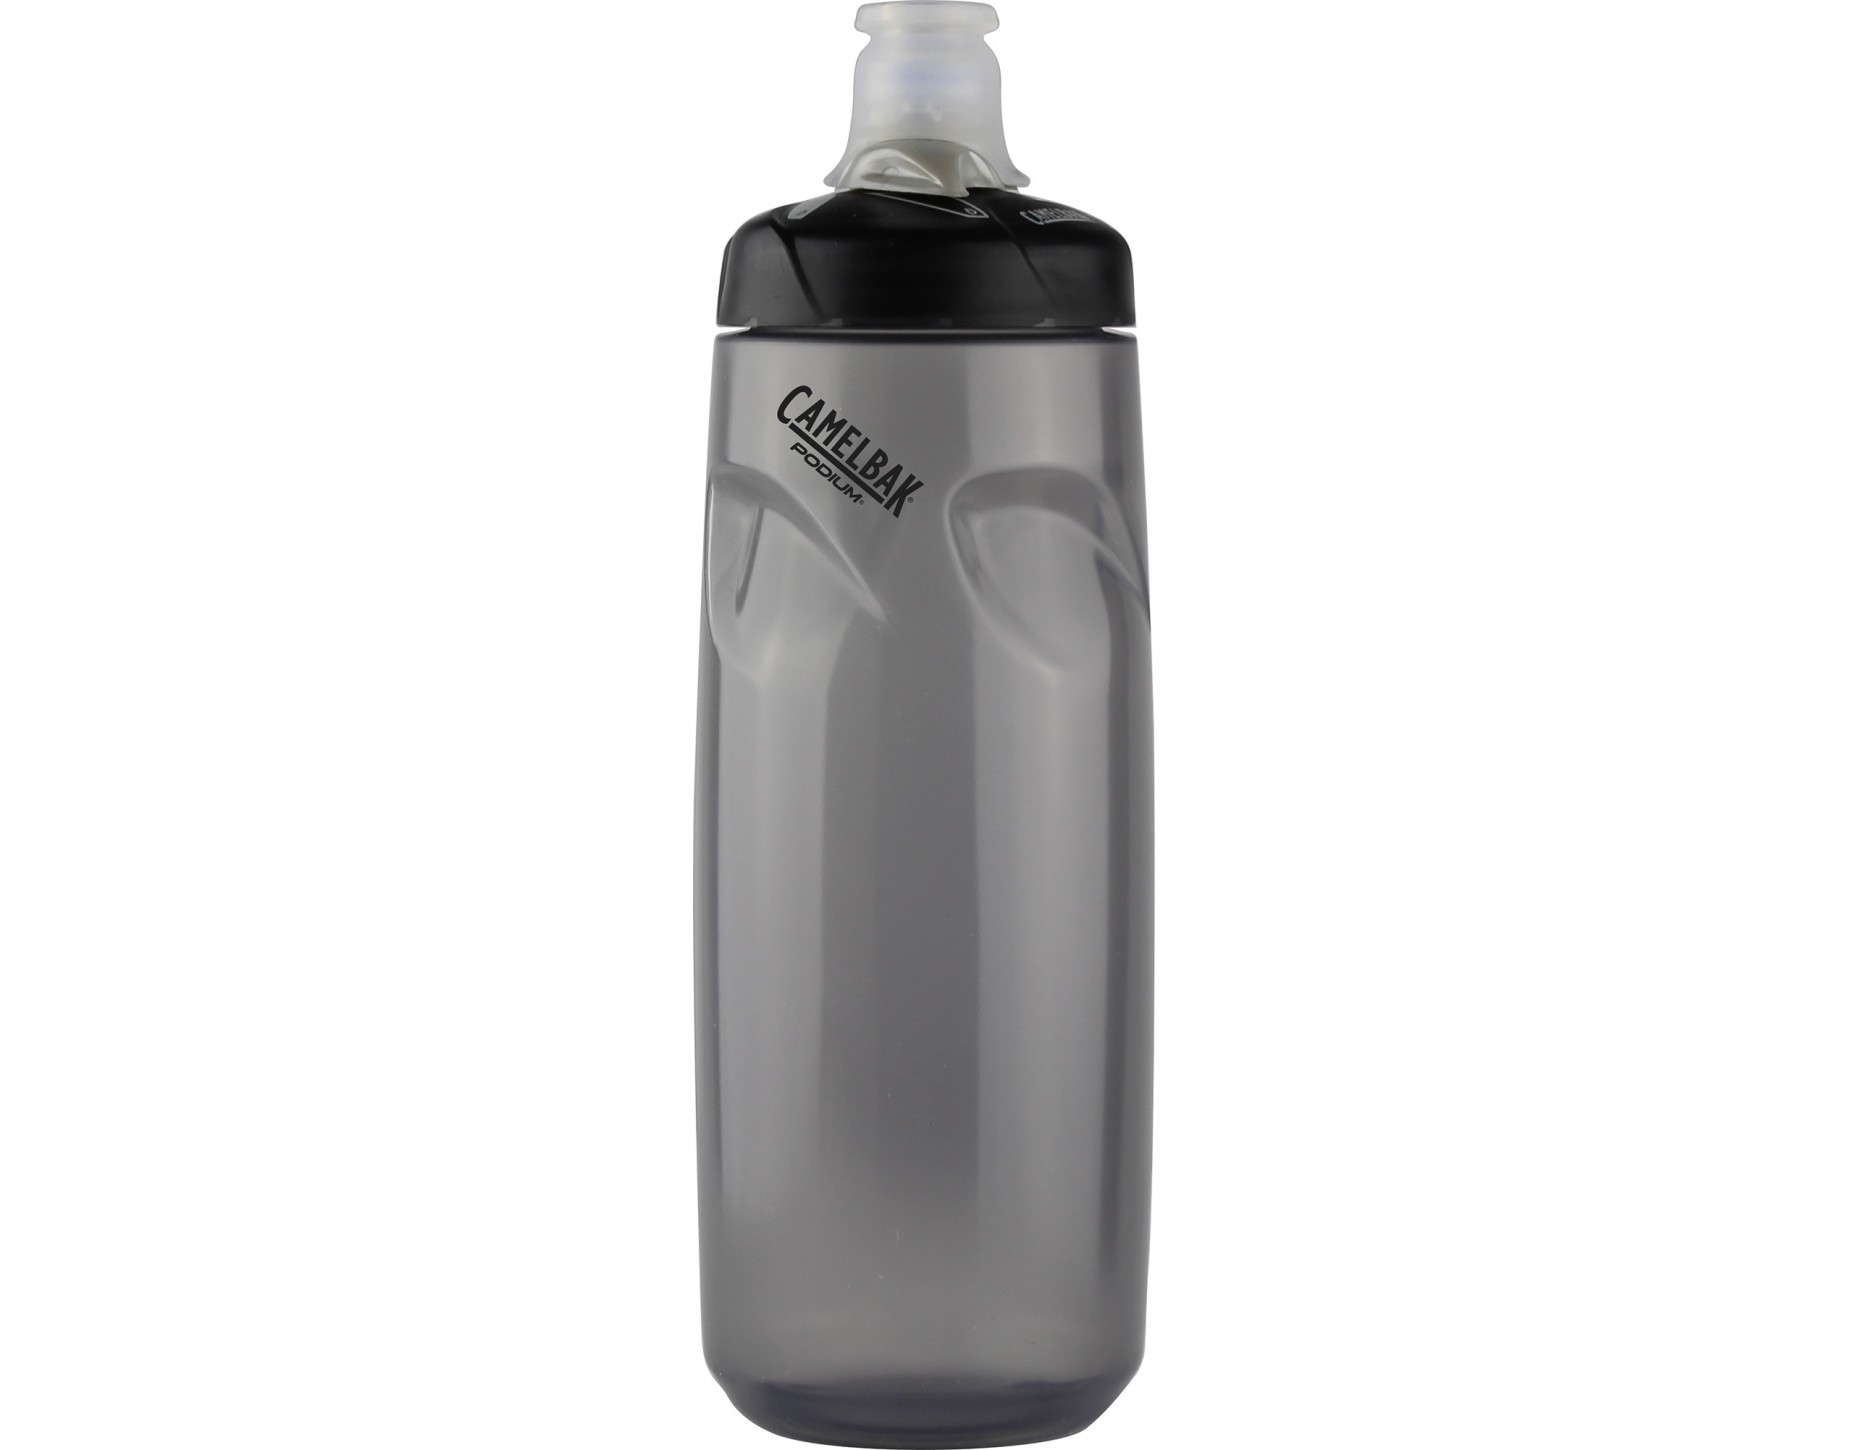 how to clean residue from camelbak